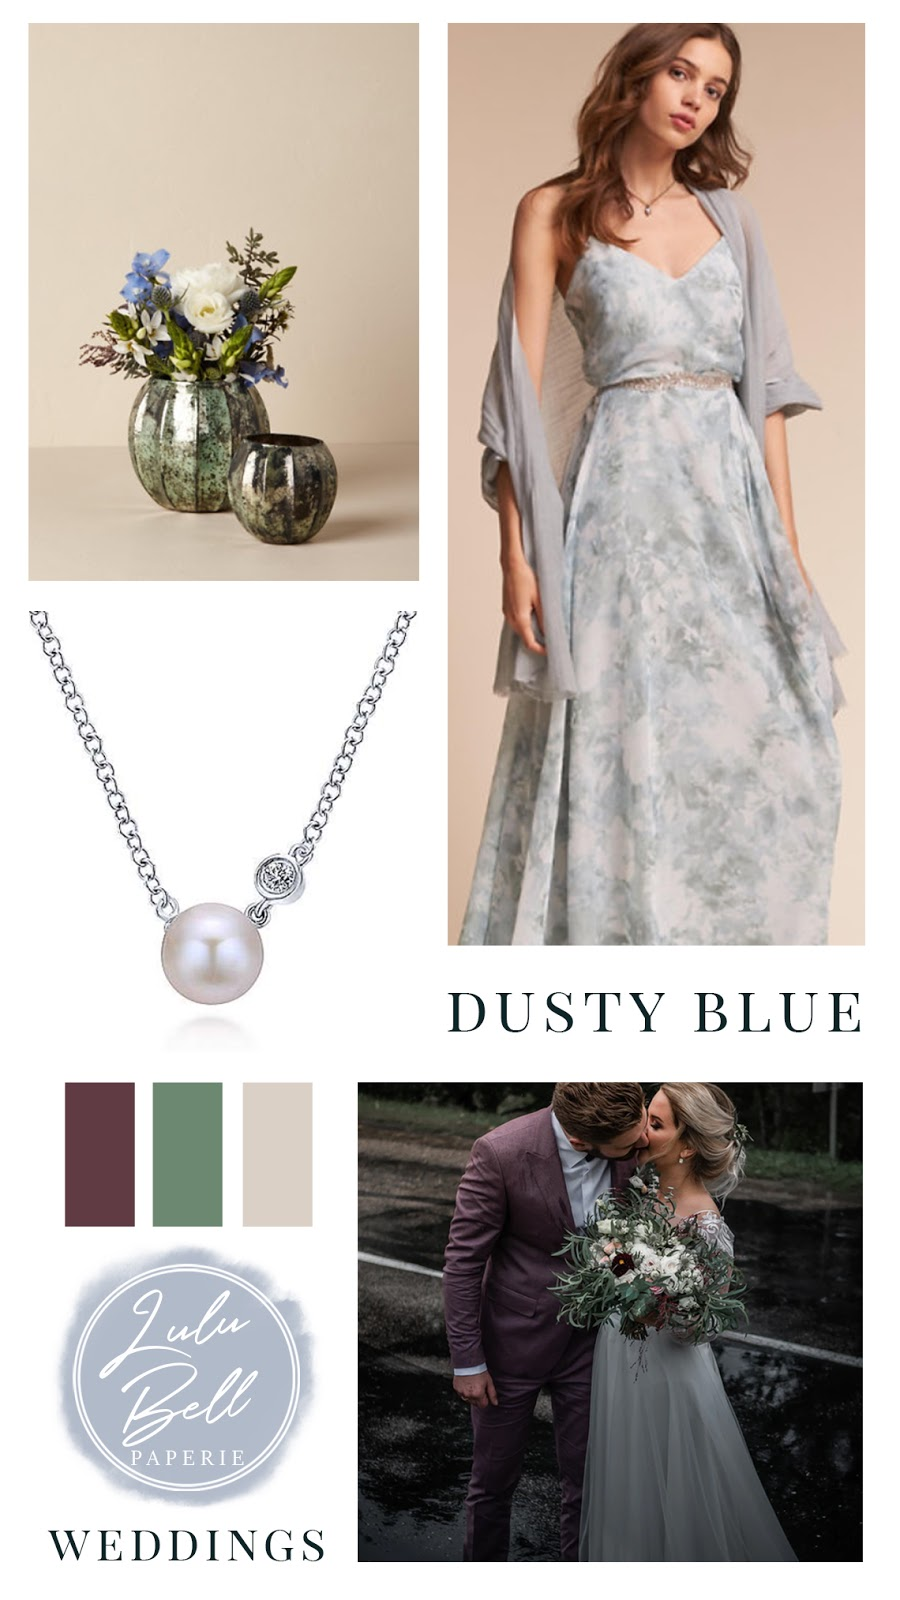 Dusty Blue, Burgundy, Green, and Beige Wedding Color Palette Inspiration